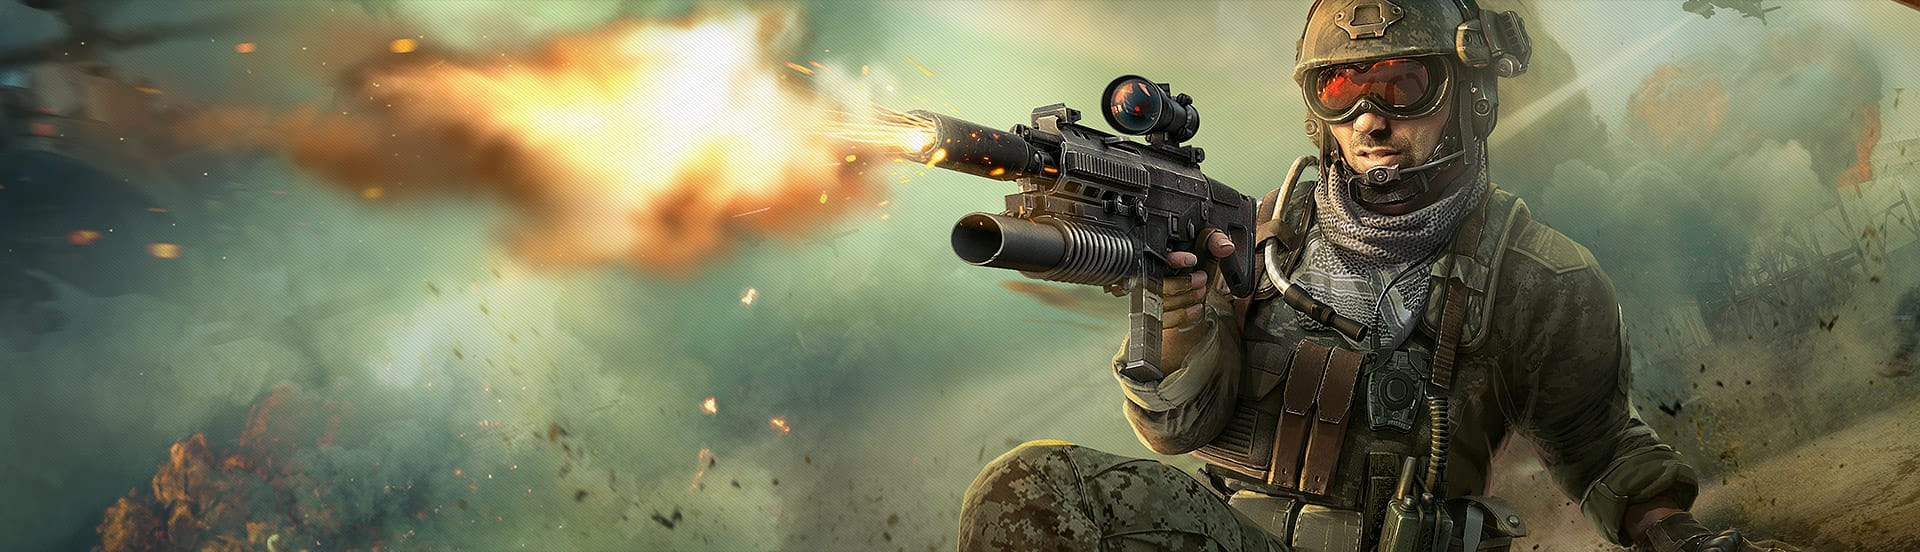 soldiers inc military strategy game plarium